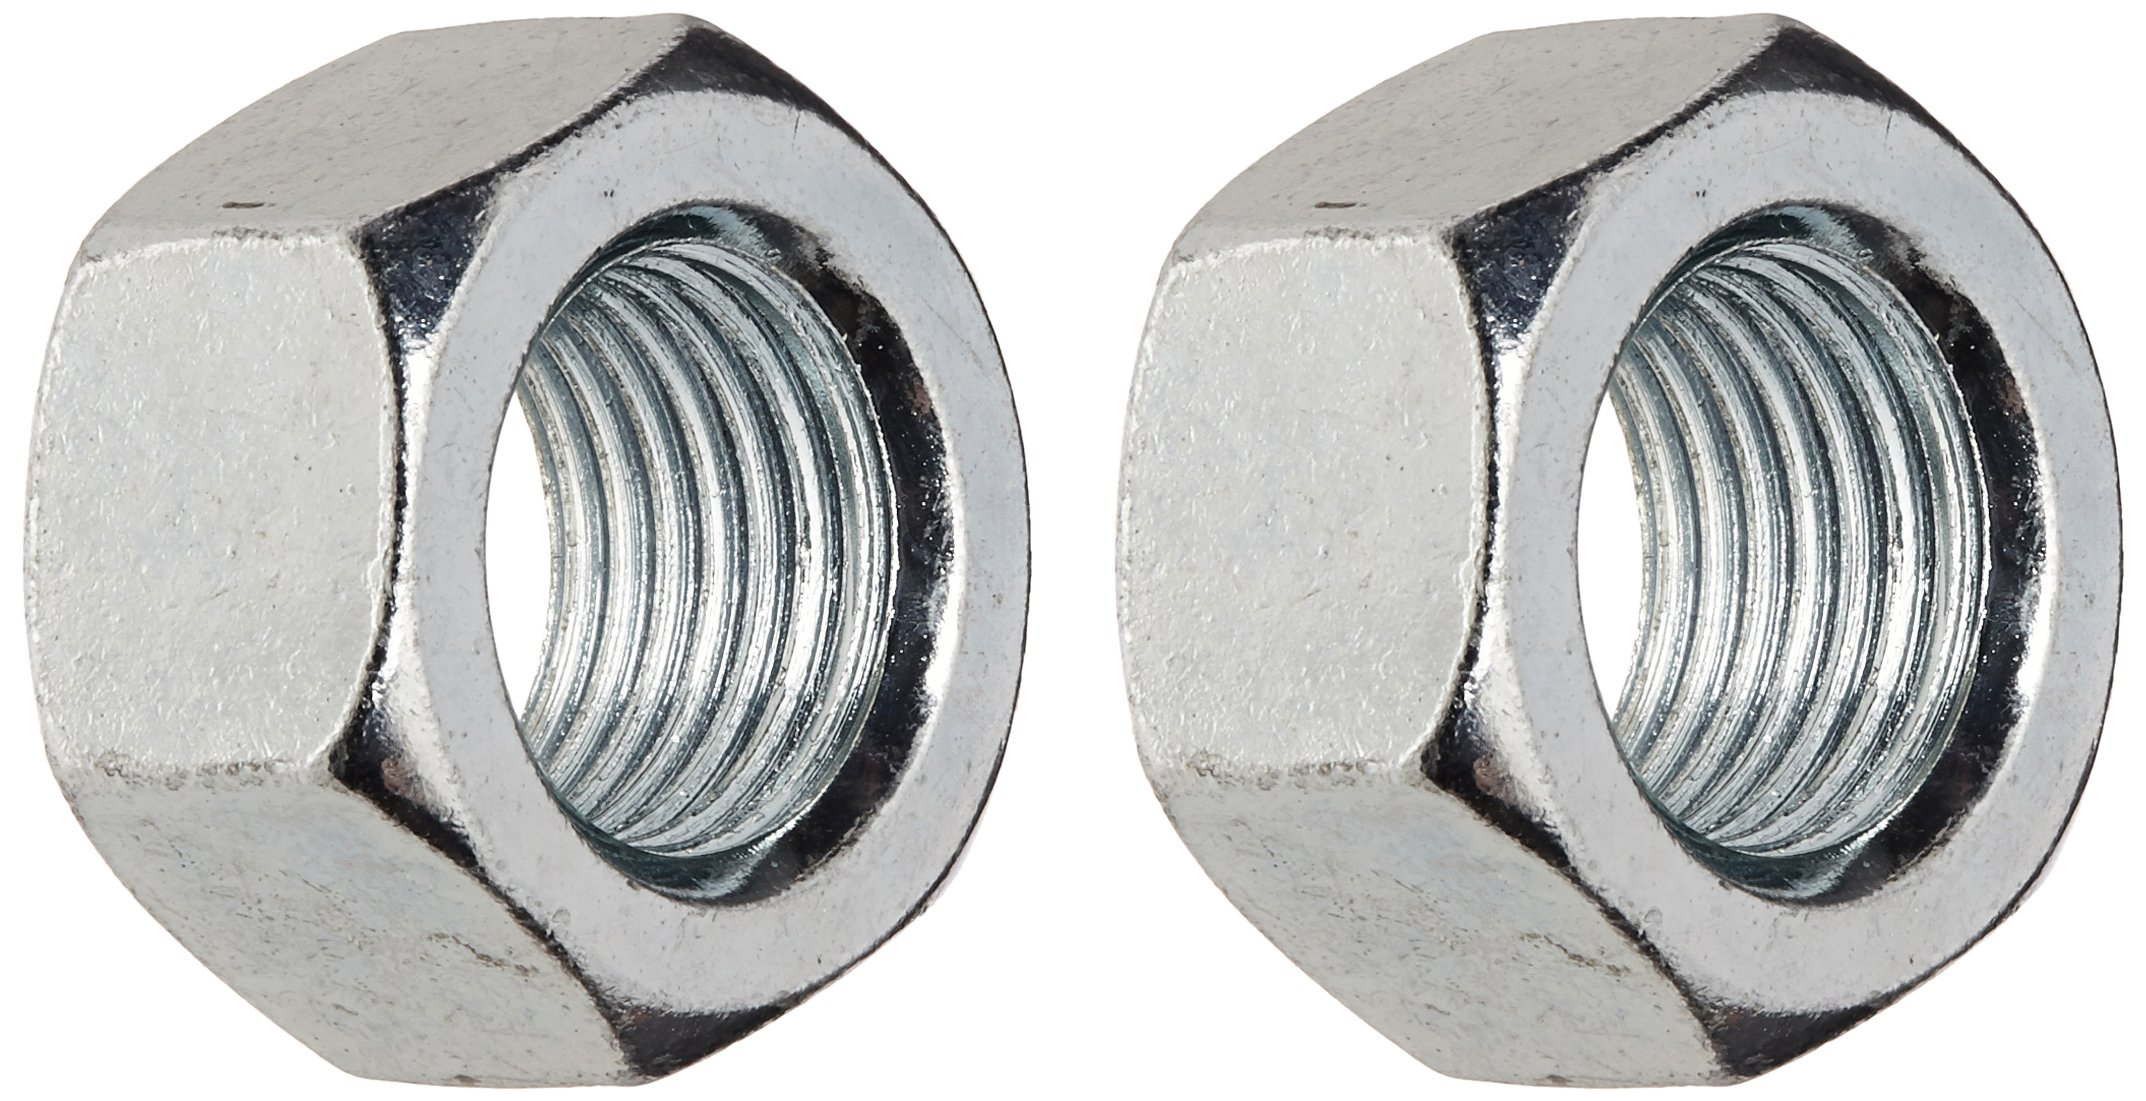 Dorman Help! 44046 Hex Nuts 1/2-20